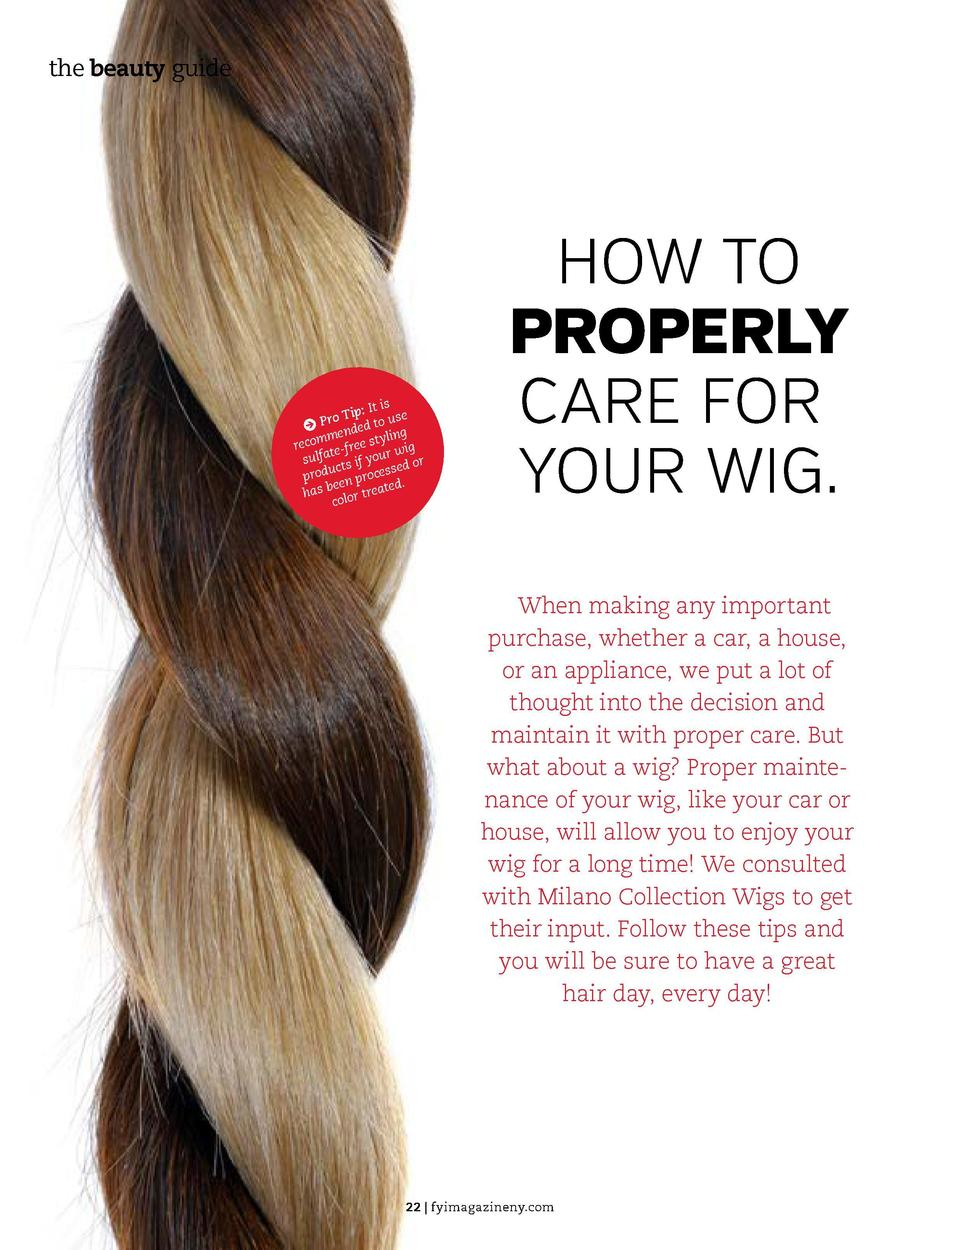 the beauty guide HAIR  the beauty guide    It is e o Tip us J Pr nded to g e omm ree st ylin g rec te-f r wi sulfa ts if y...